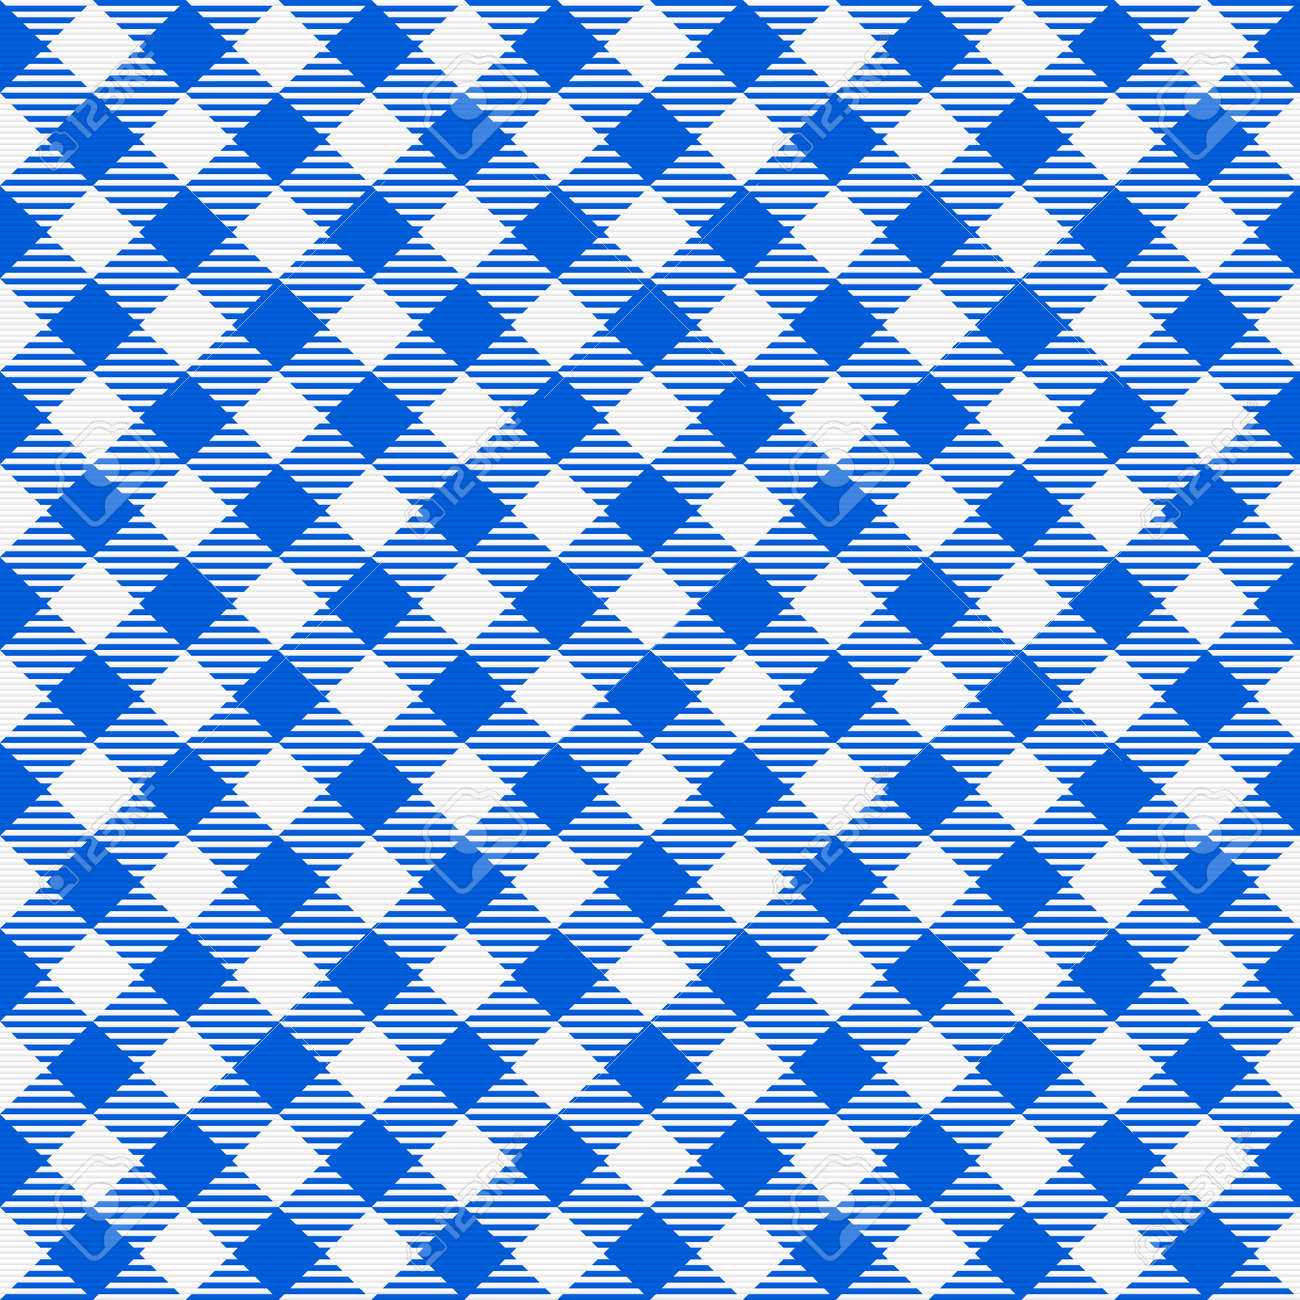 Beau Blue And White Seamless Checkered Tablecloth. Traditional Gingham Pattern,  Checkered Fabric, Tablecloth Texture